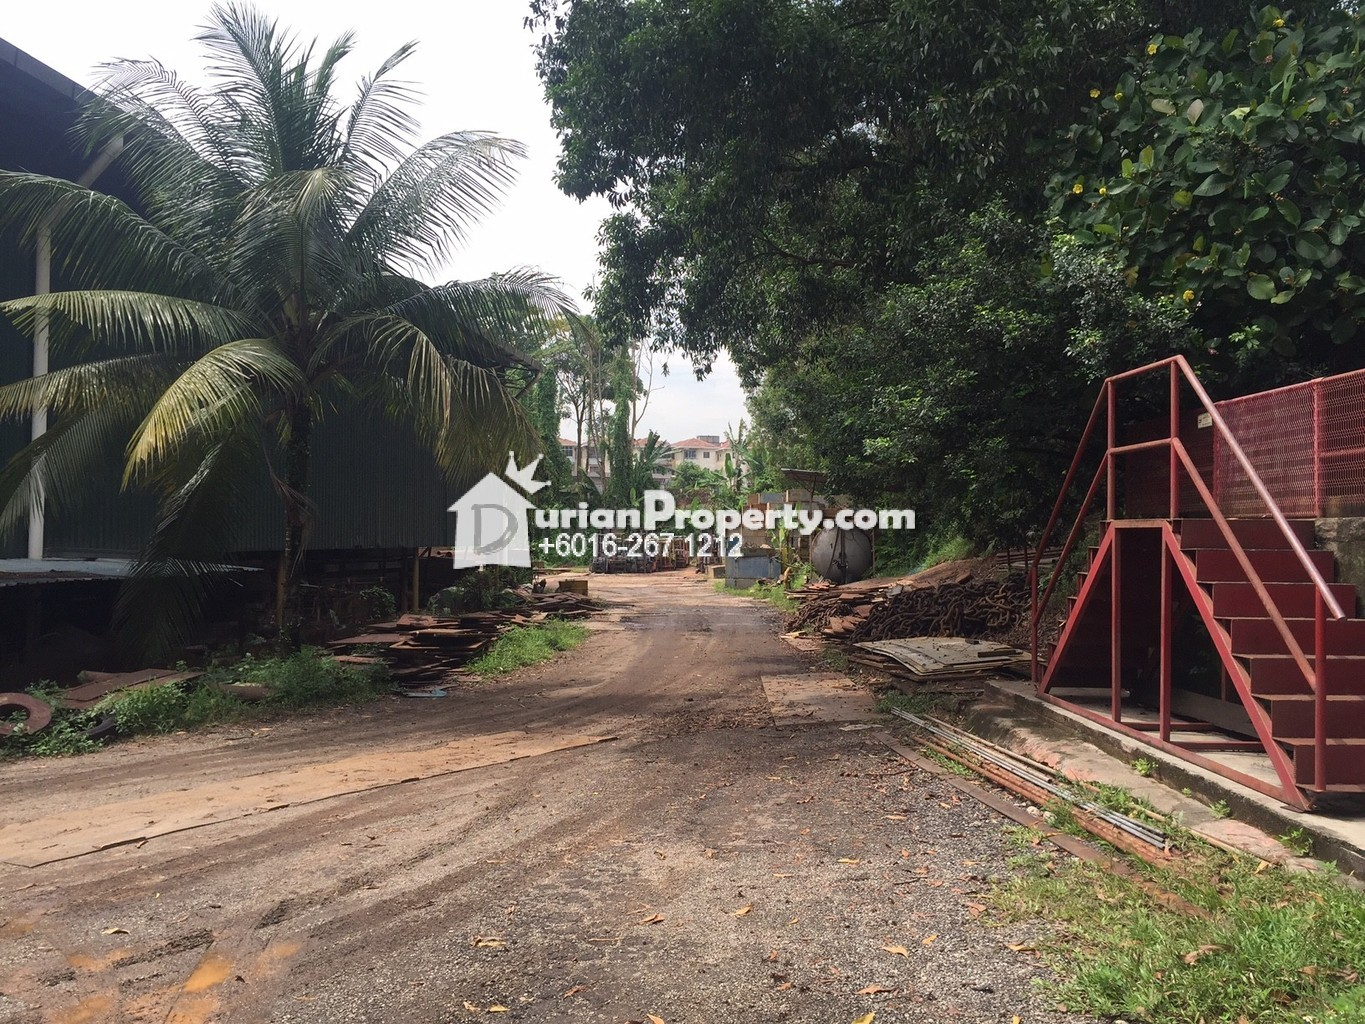 Industrial Land For Sale at Balakong, Selangor